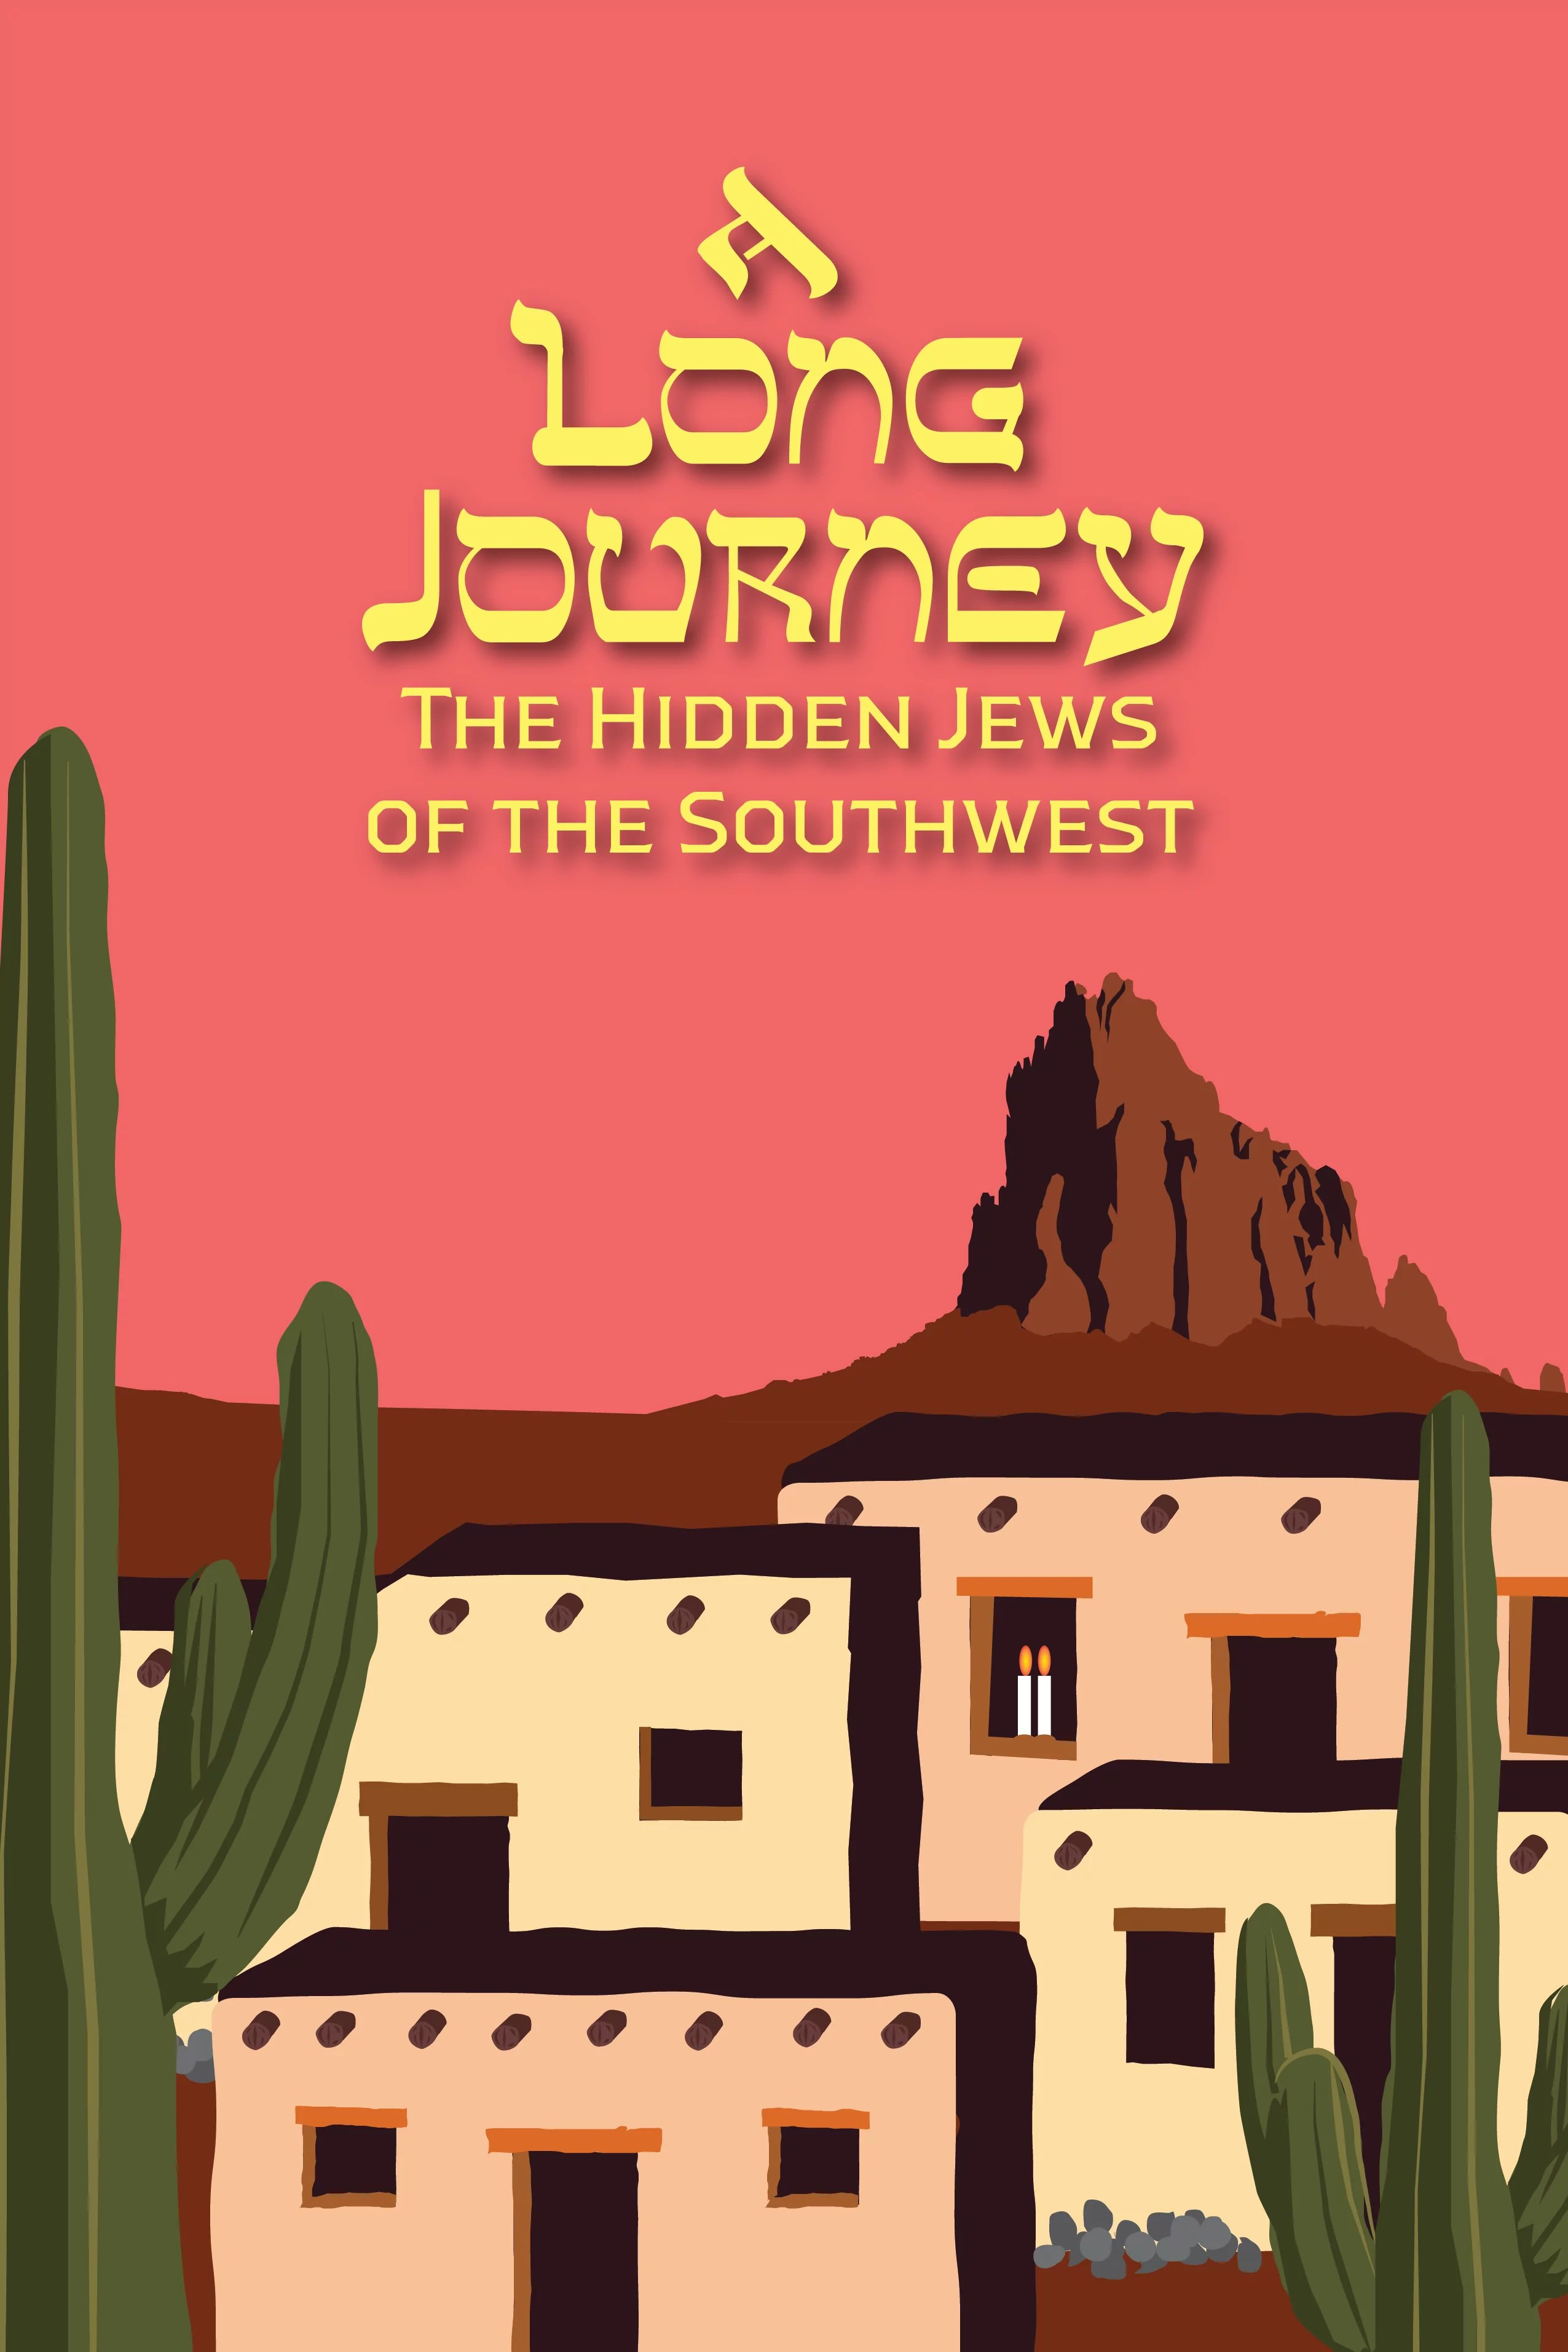 A Long Journey: The Hidden Jews of the Southwest.